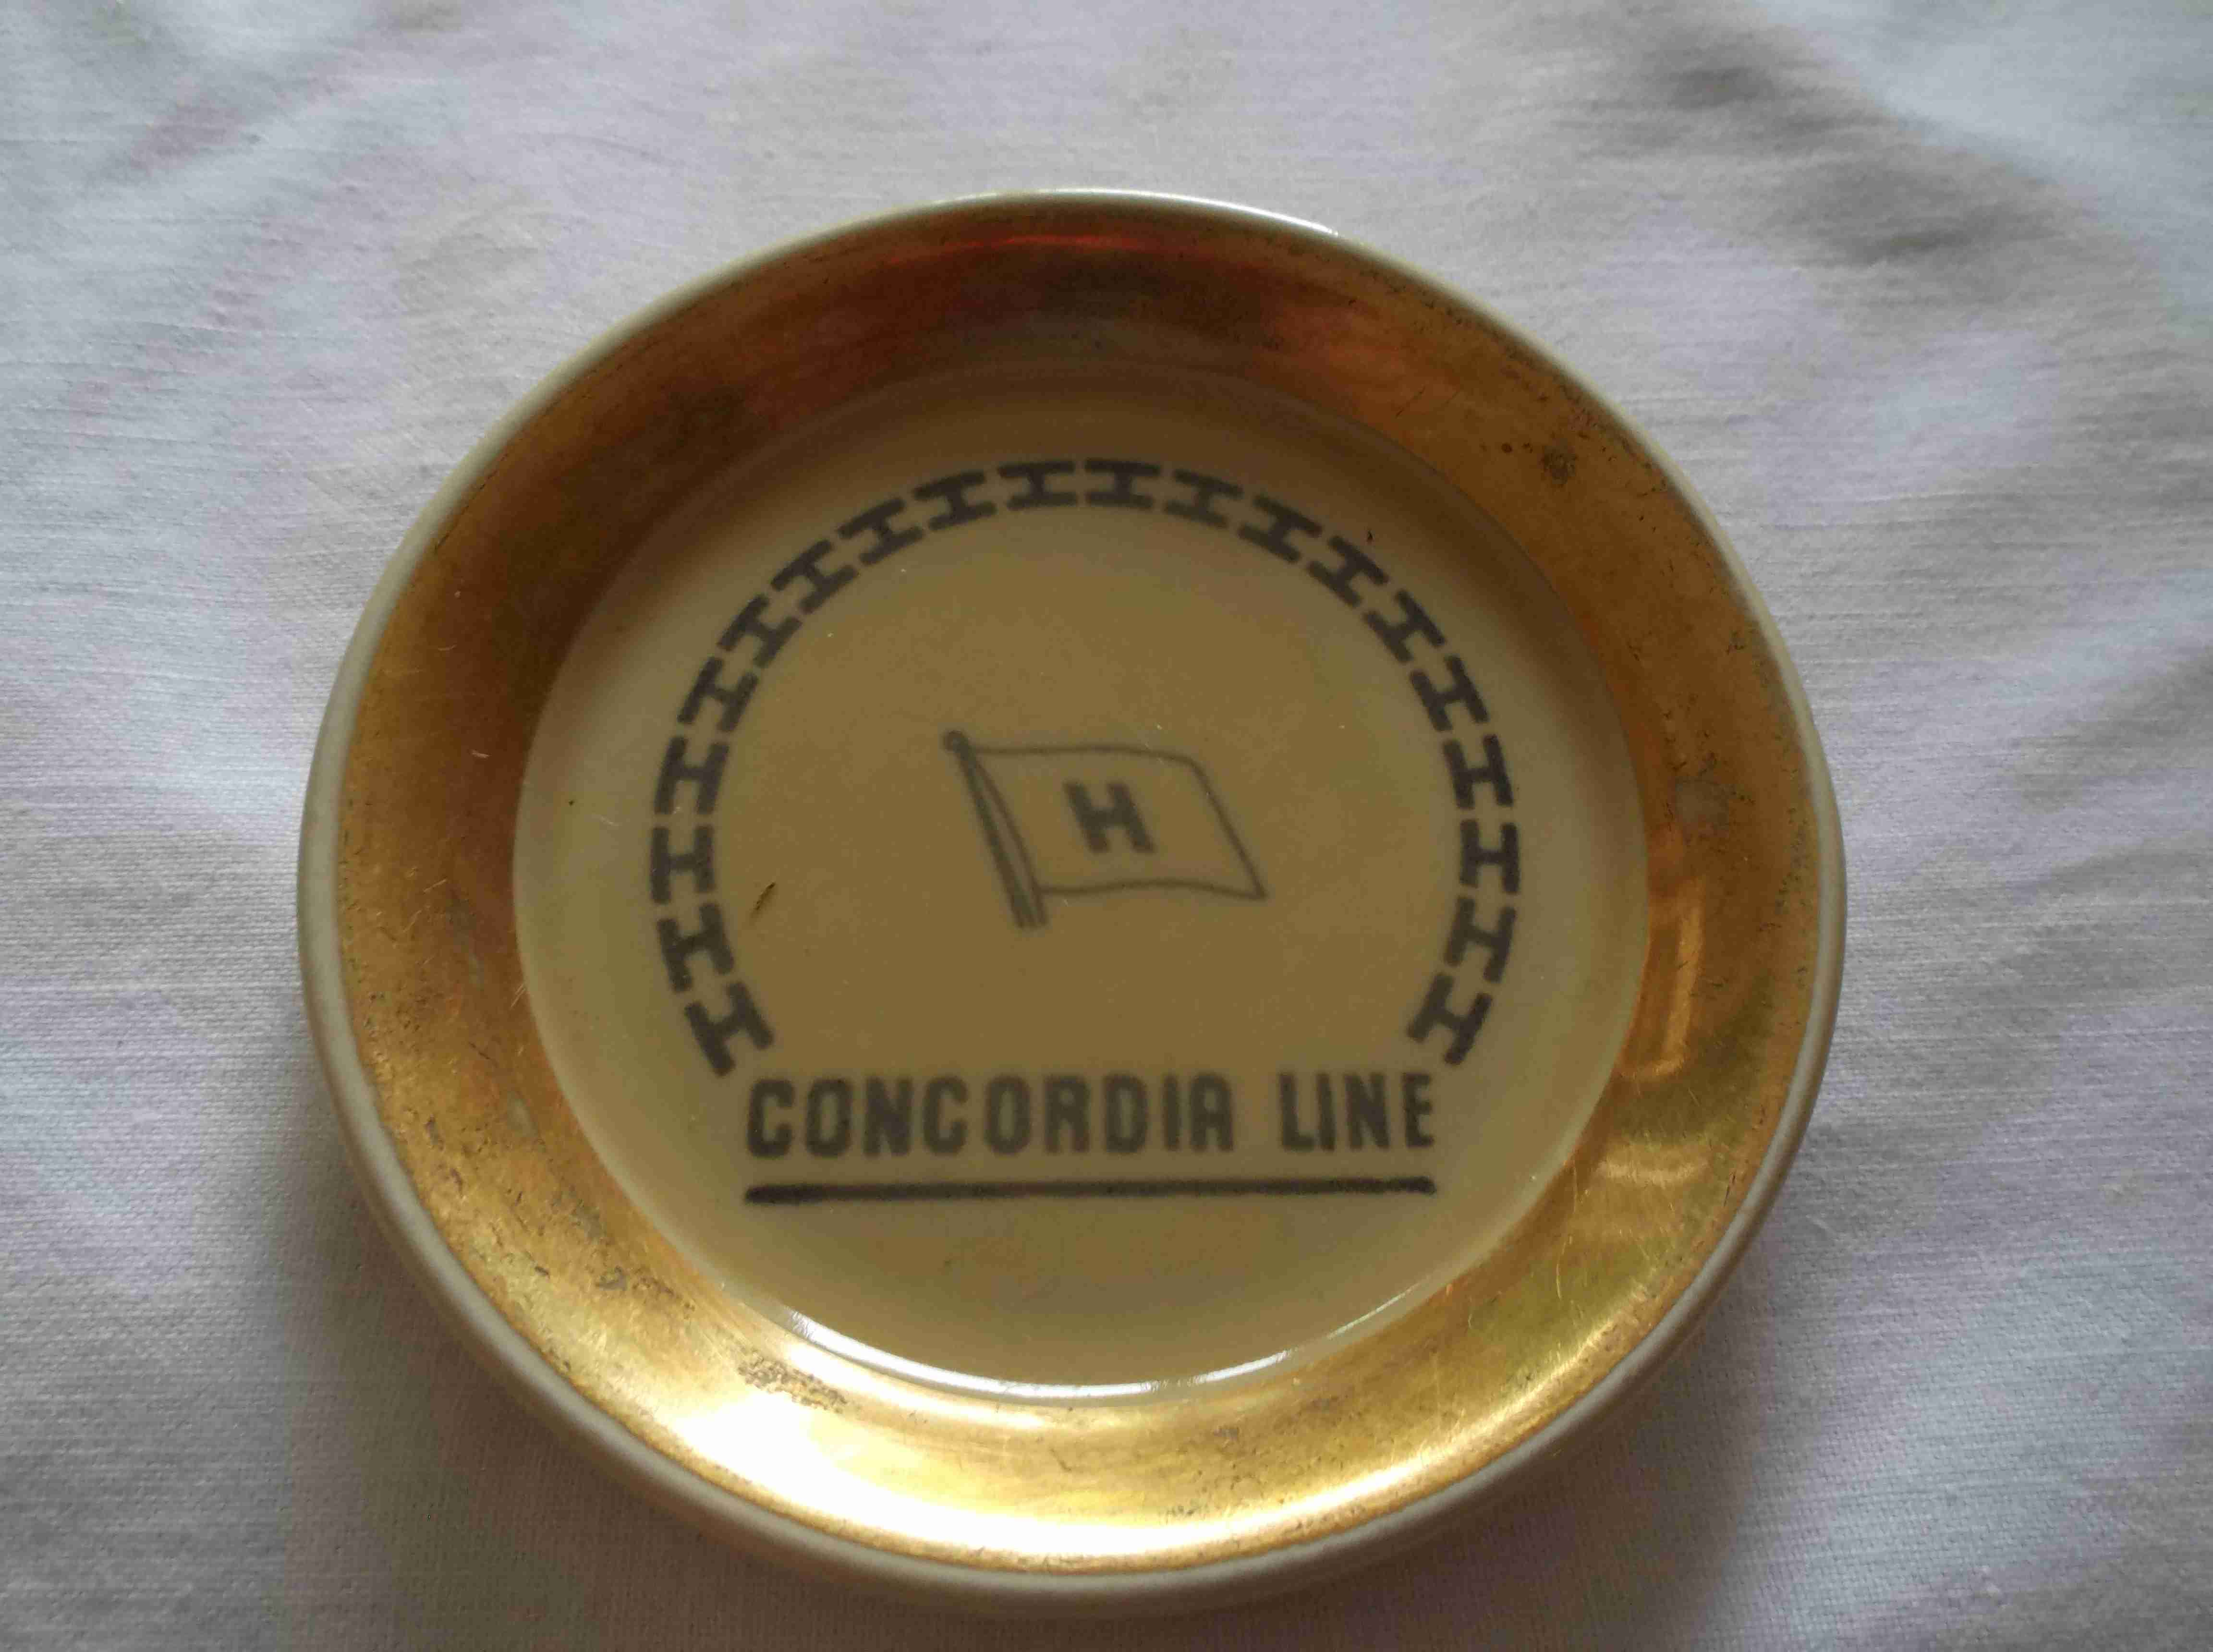 CHINA PIN DISH FROM THE CONCORDIA LINE SHIPPING COMPANY